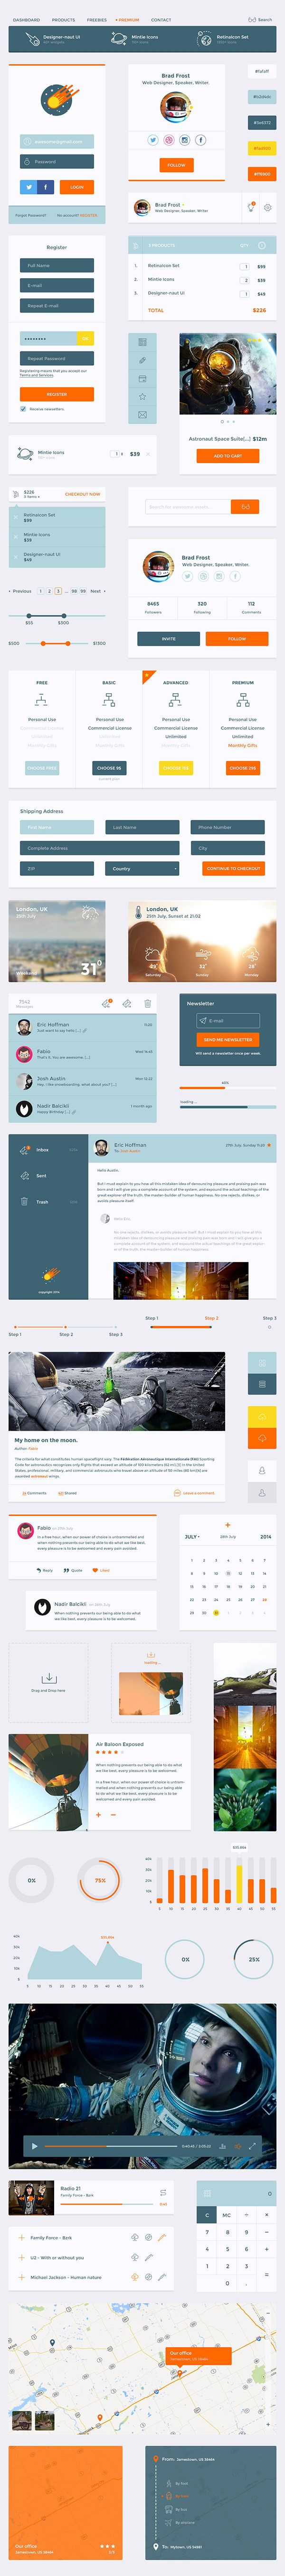 Designer-naut UI Kit | GraphicBurger